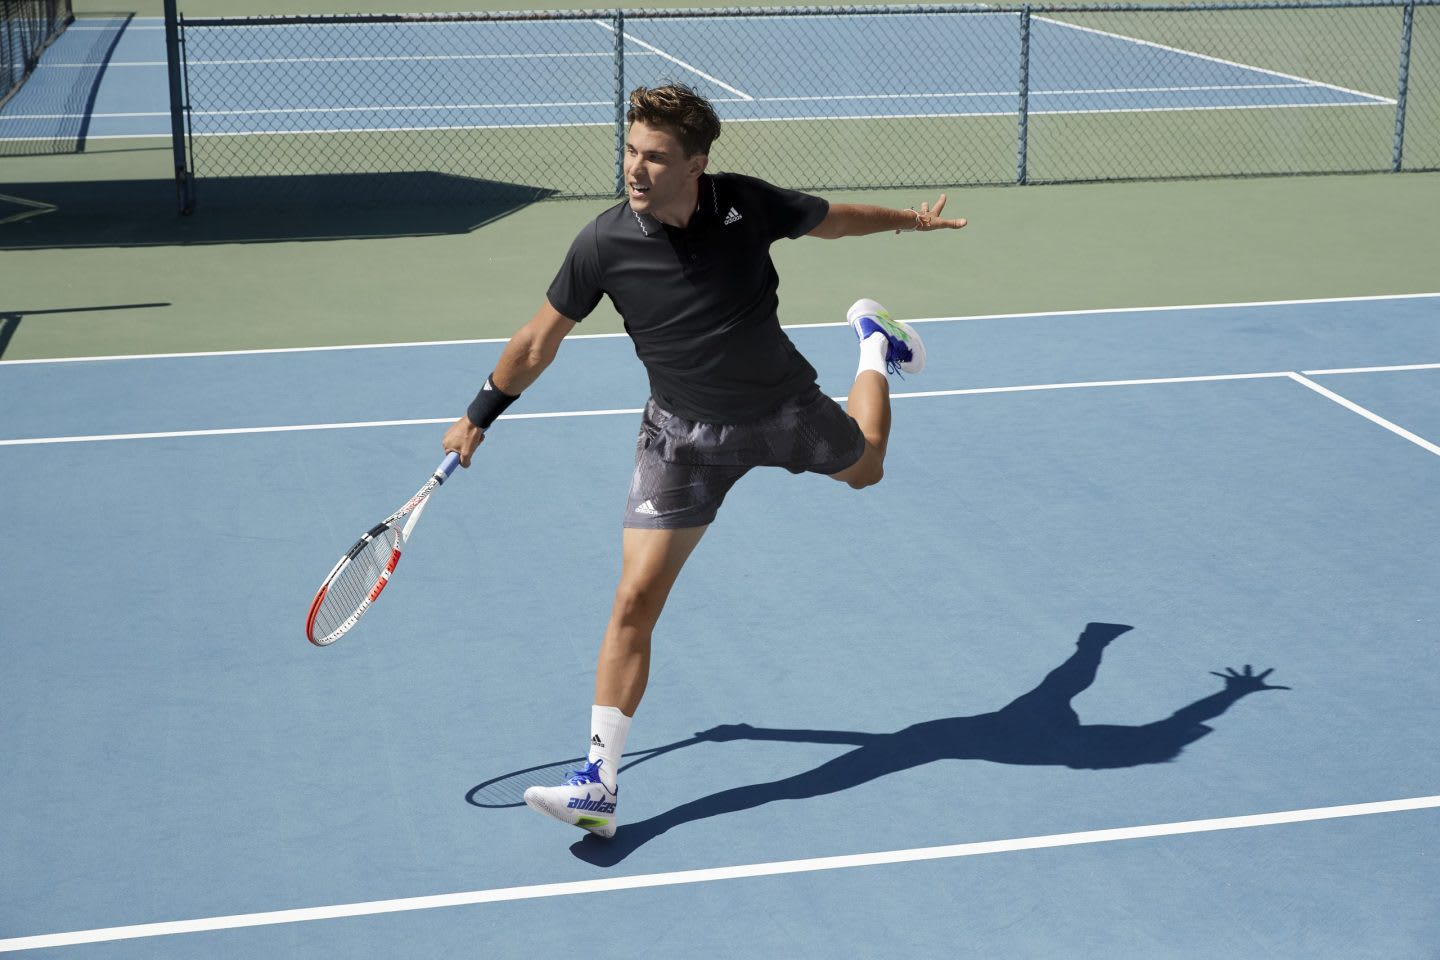 Man wearing black and grey sports clothes holding a tennis racket on a tennis court, Dominic, Thiem, athlete, sports, sport, adidas, tennis, player, GamePlan A